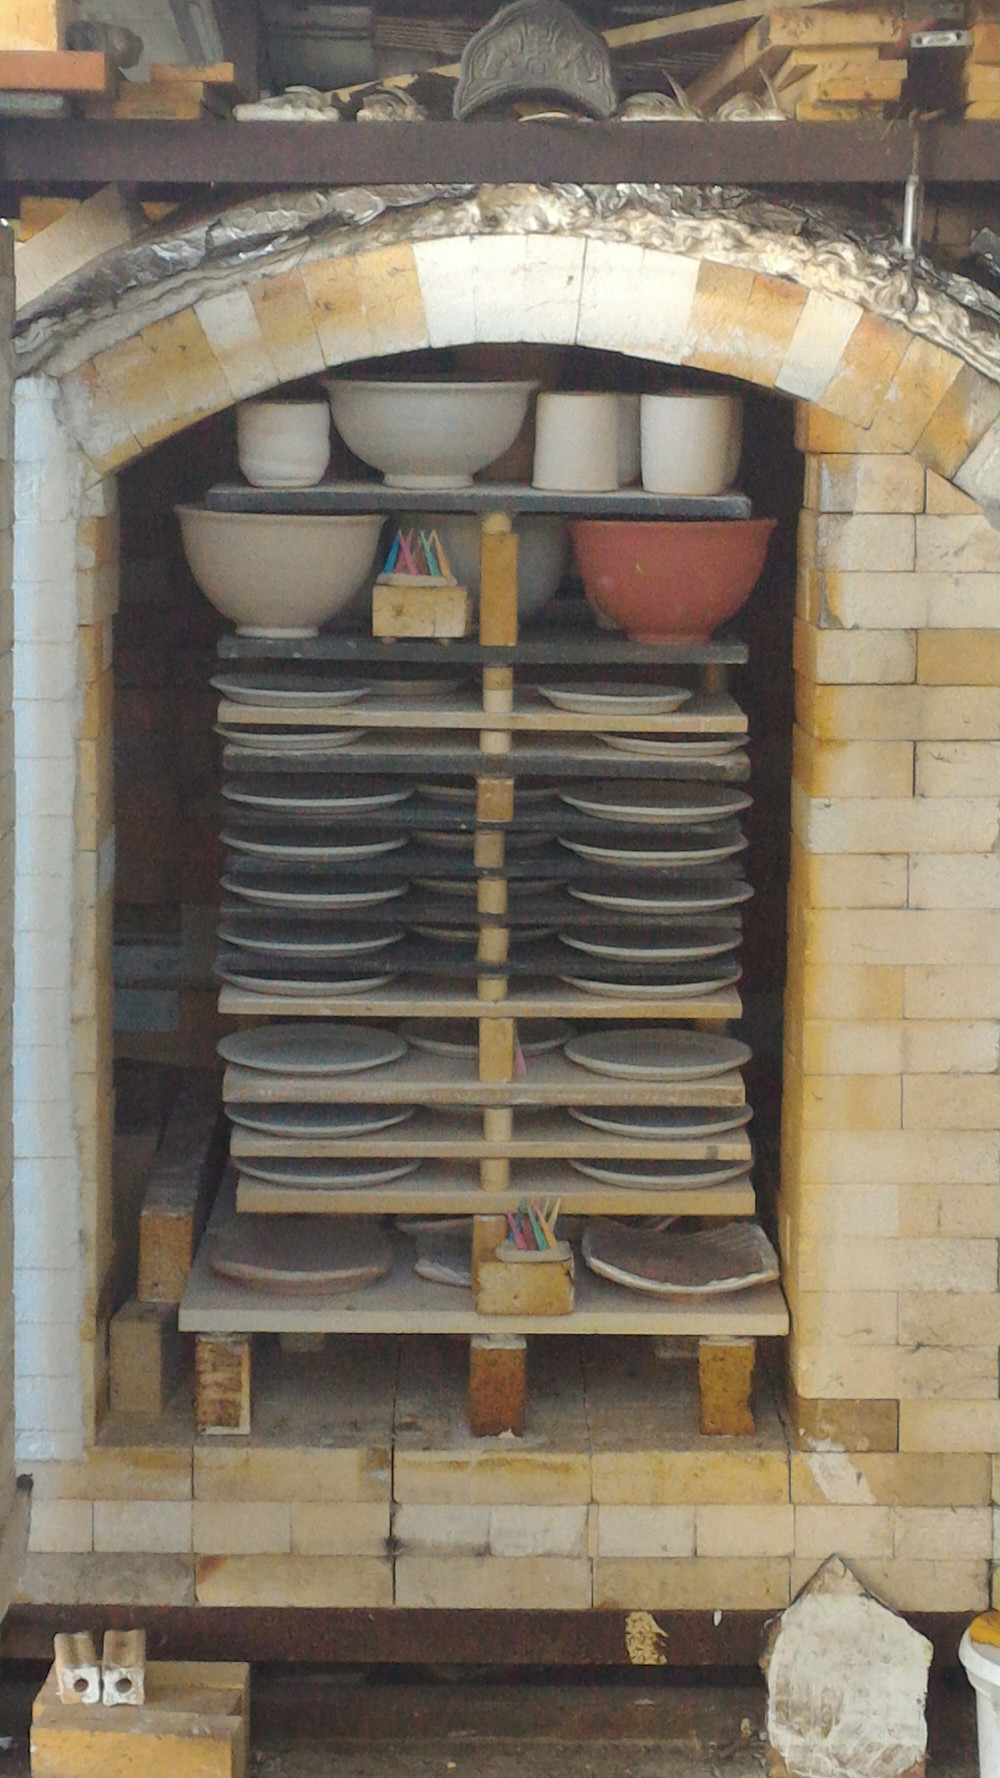 Before: Kiln Loaded